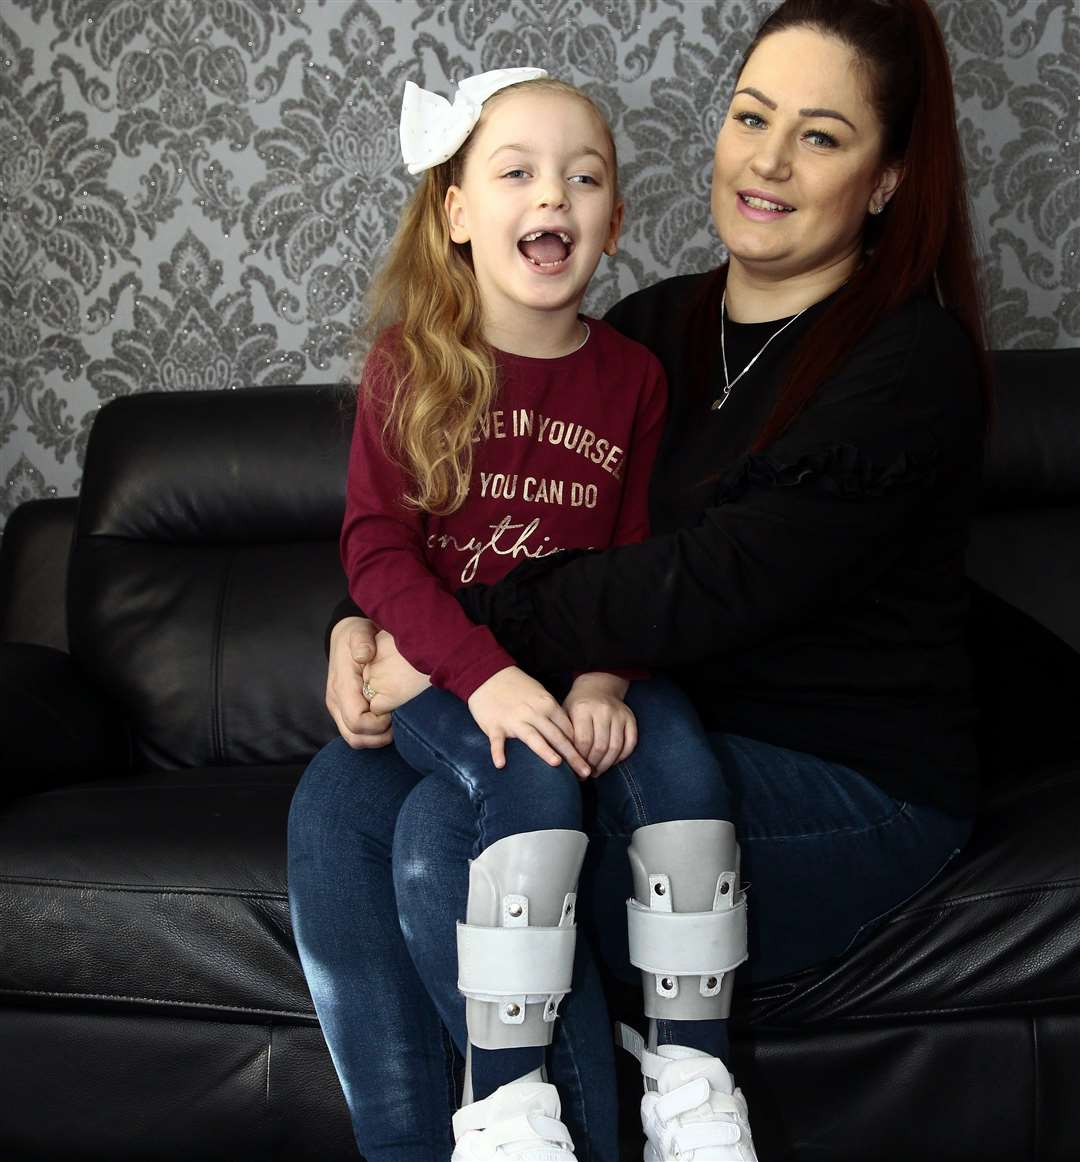 Lily-Mae Leadsham, 6, underwent life-changing surgery last year and is now able to dance, much to the delight of mum Kerry